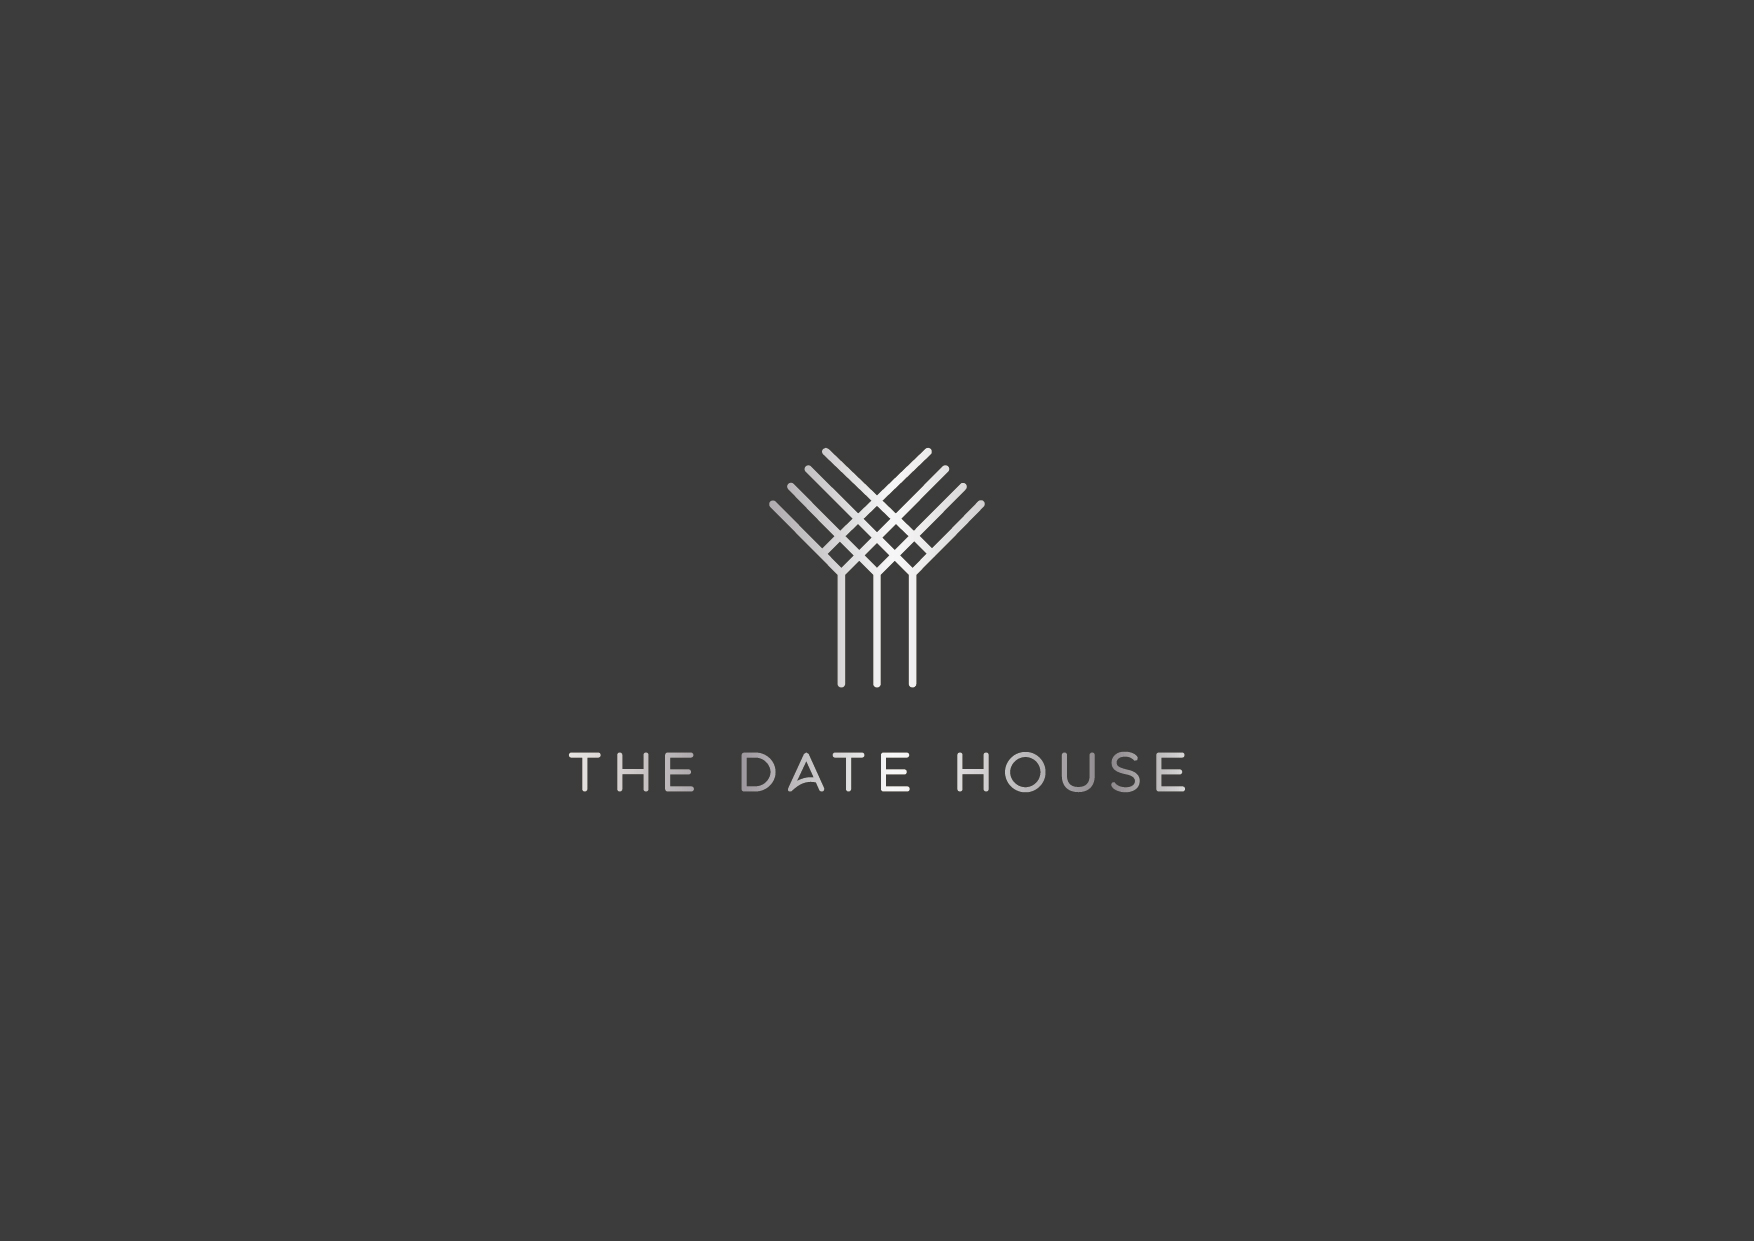 THE DATE HOUSE